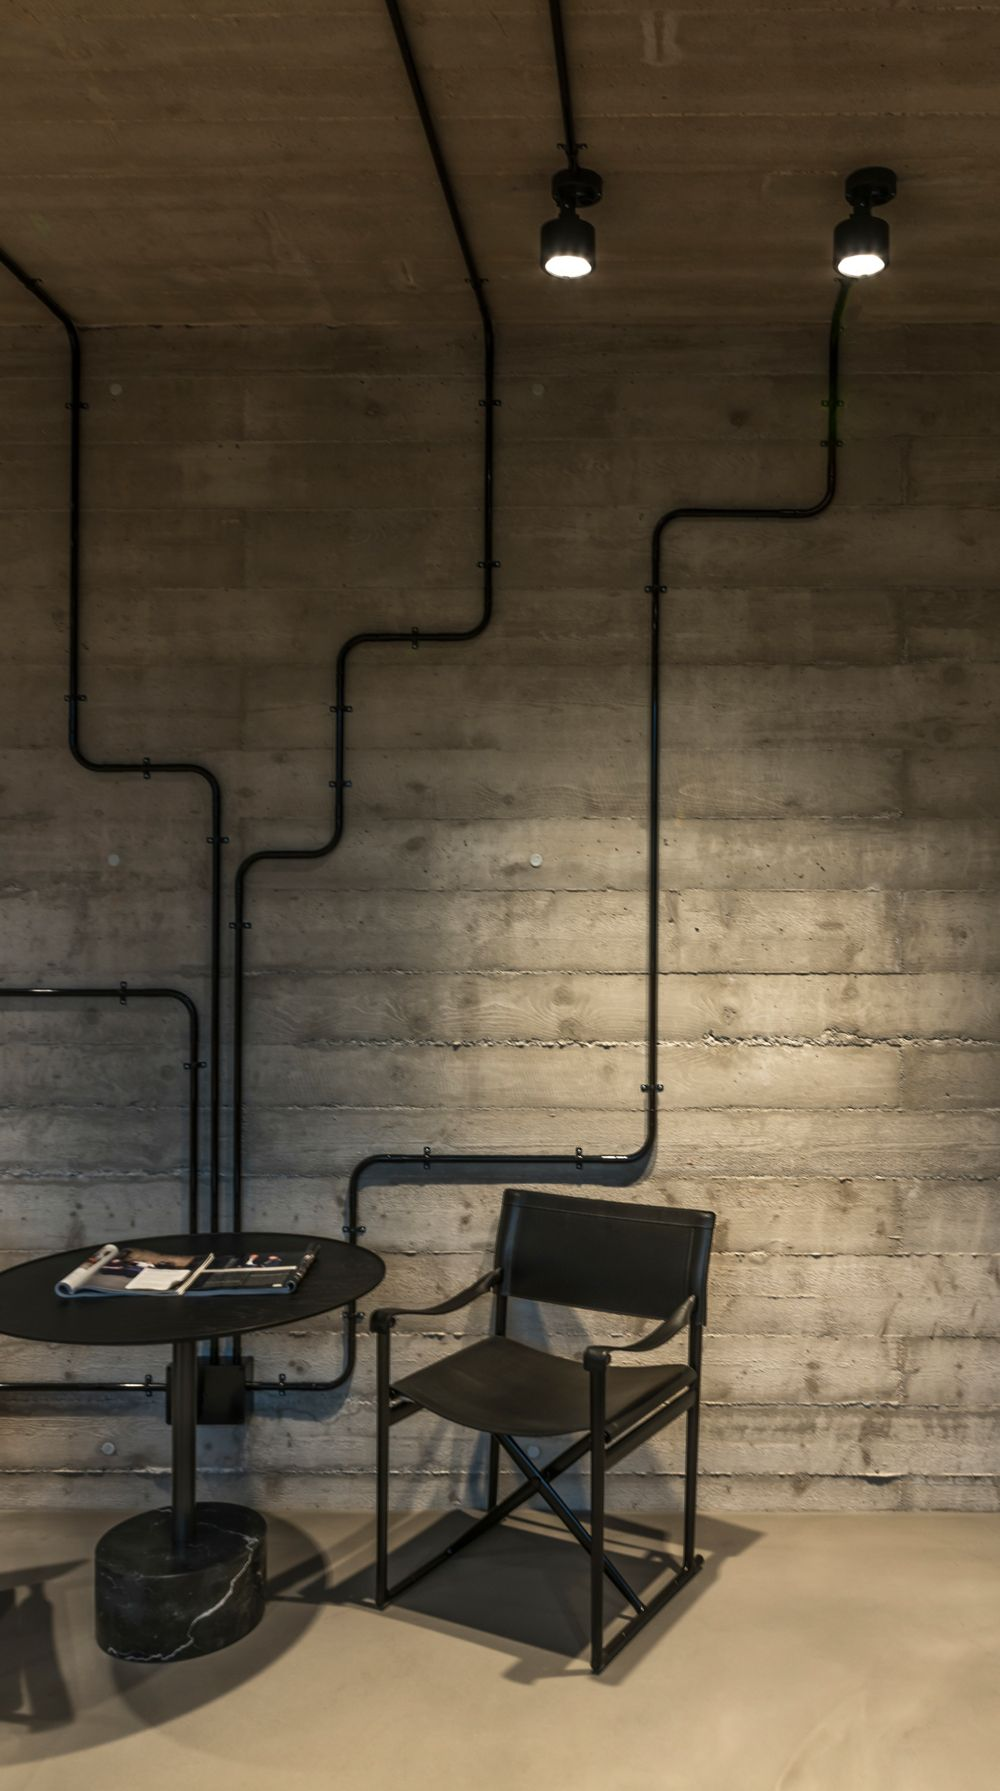 small resolution of accent erco lighting and surface mounted wiring as a graphic element interior wall surface wiring